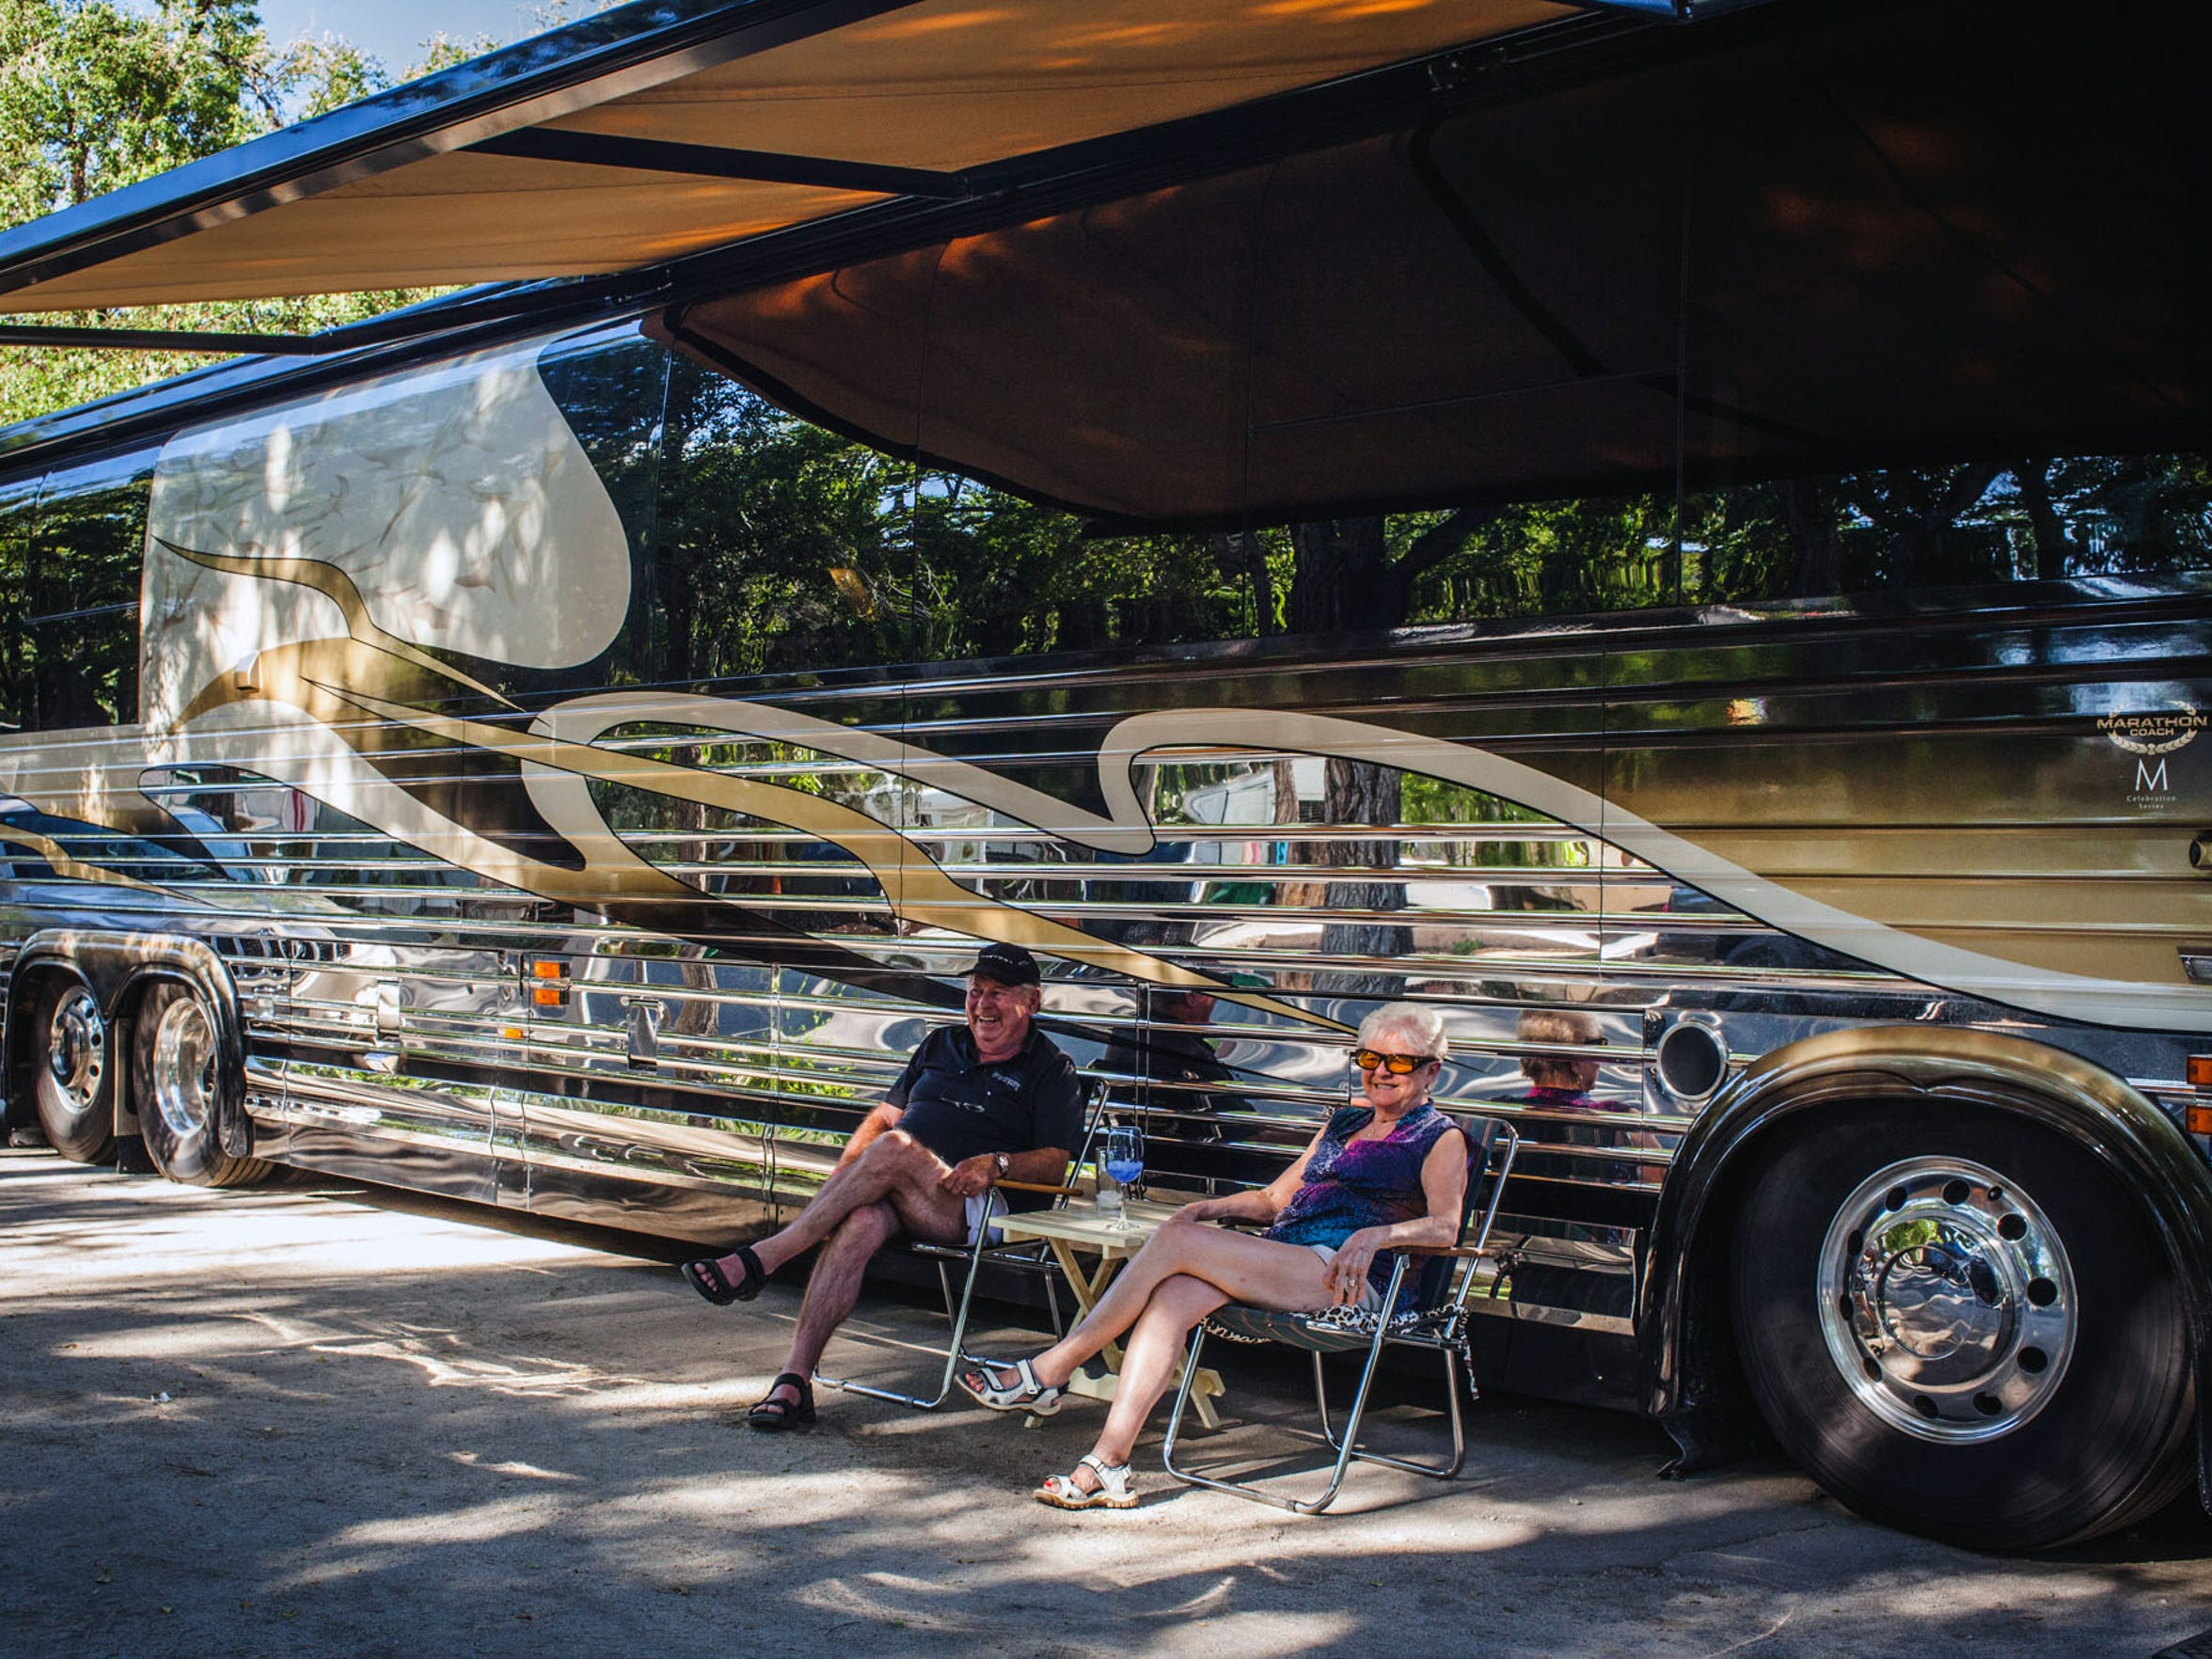 A couple sits outside their large bus-sized RV during